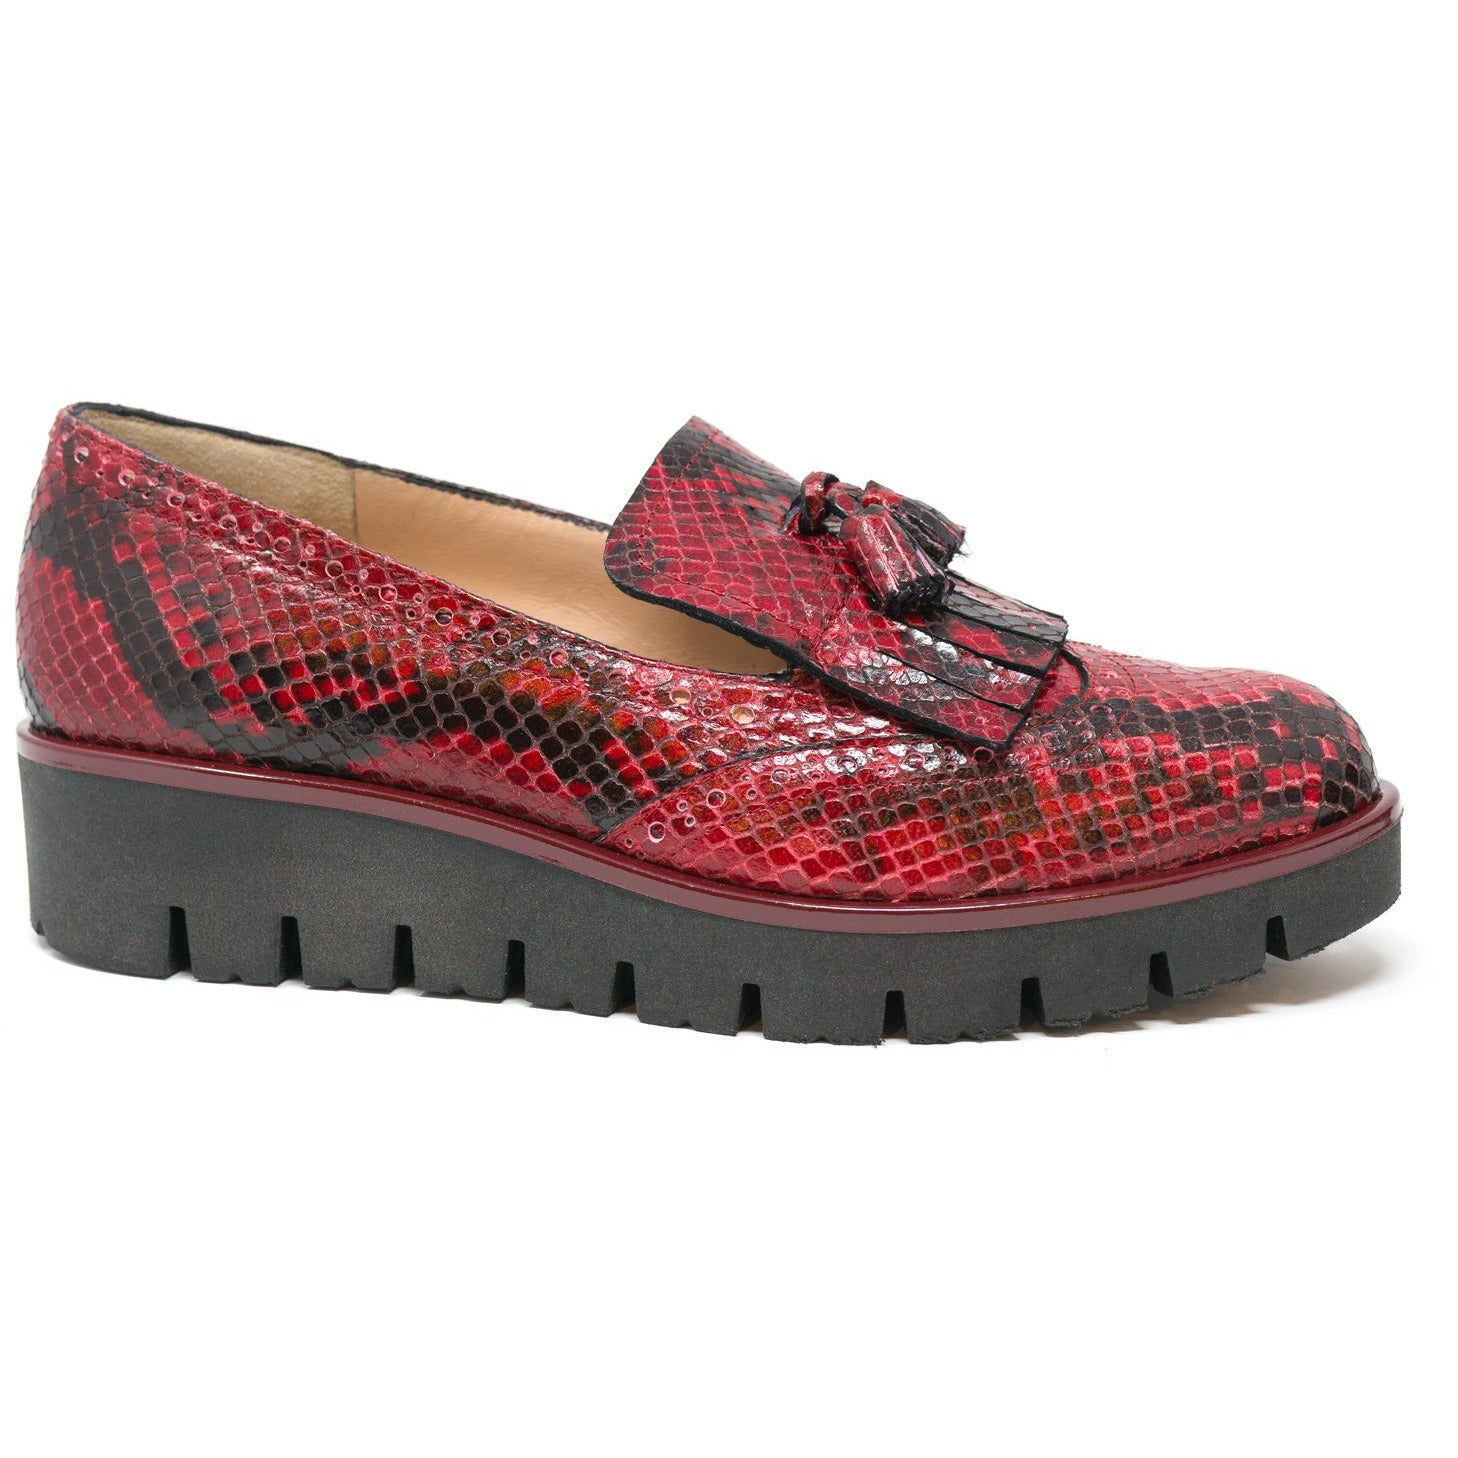 MIL6065 T20 Red Python Women Slip On - New Fall Winter 2019-2020 Collection